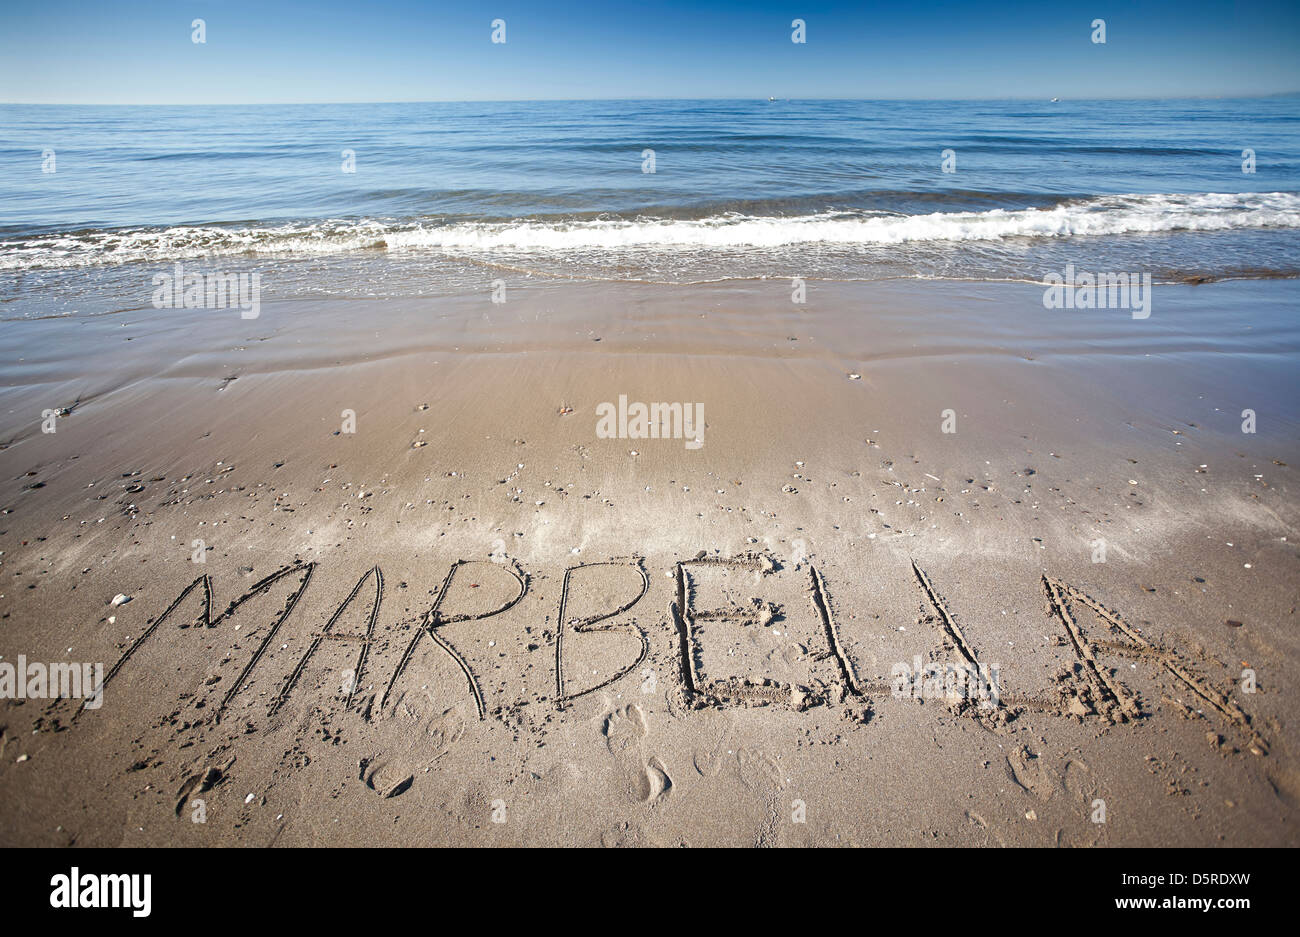 the word Marbella written in the wet sand  at the beach - Stock Image